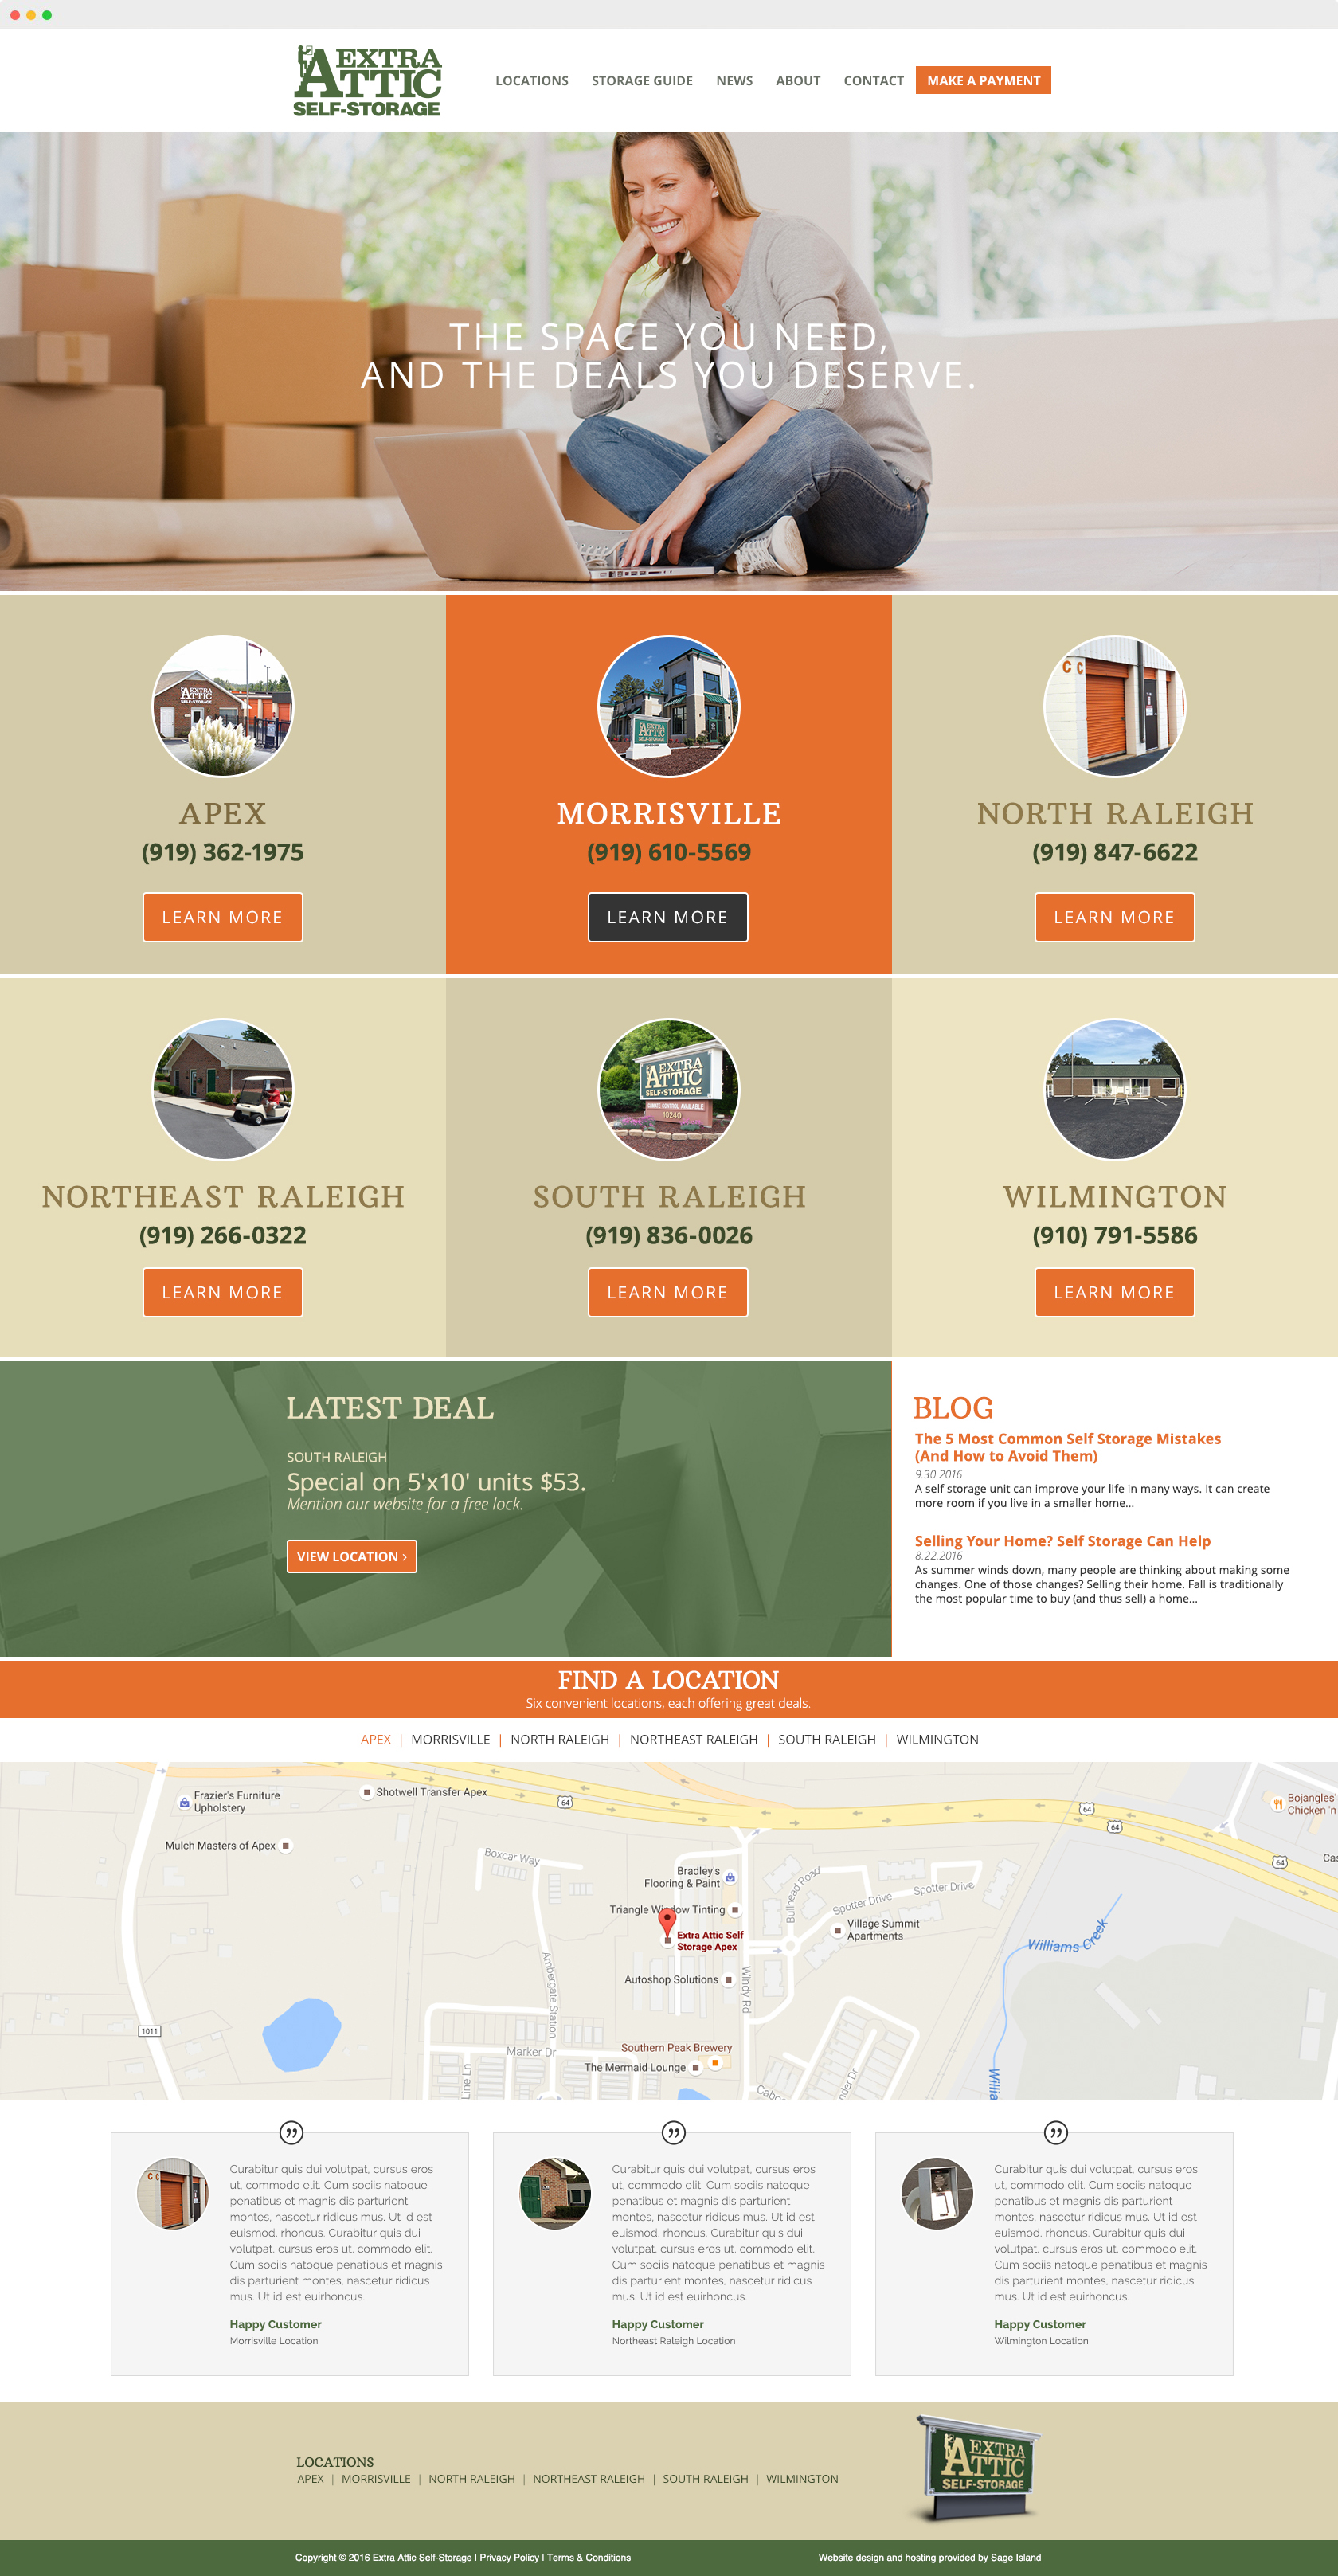 extra-attic-self-storage-website-design